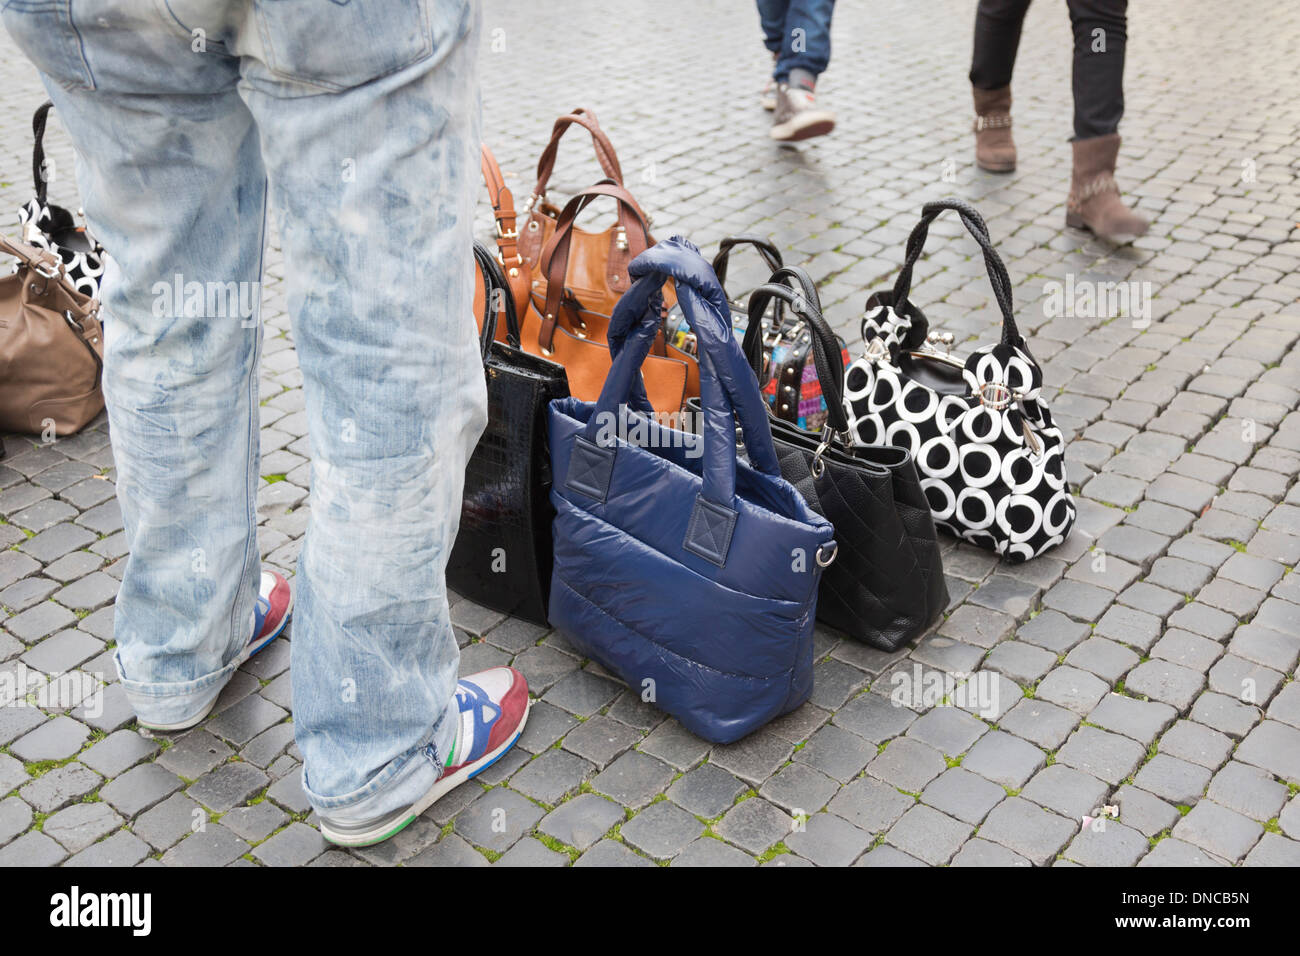 Immigrant to Italy selling fake designer handbags in Piazza Navona da2695575c077